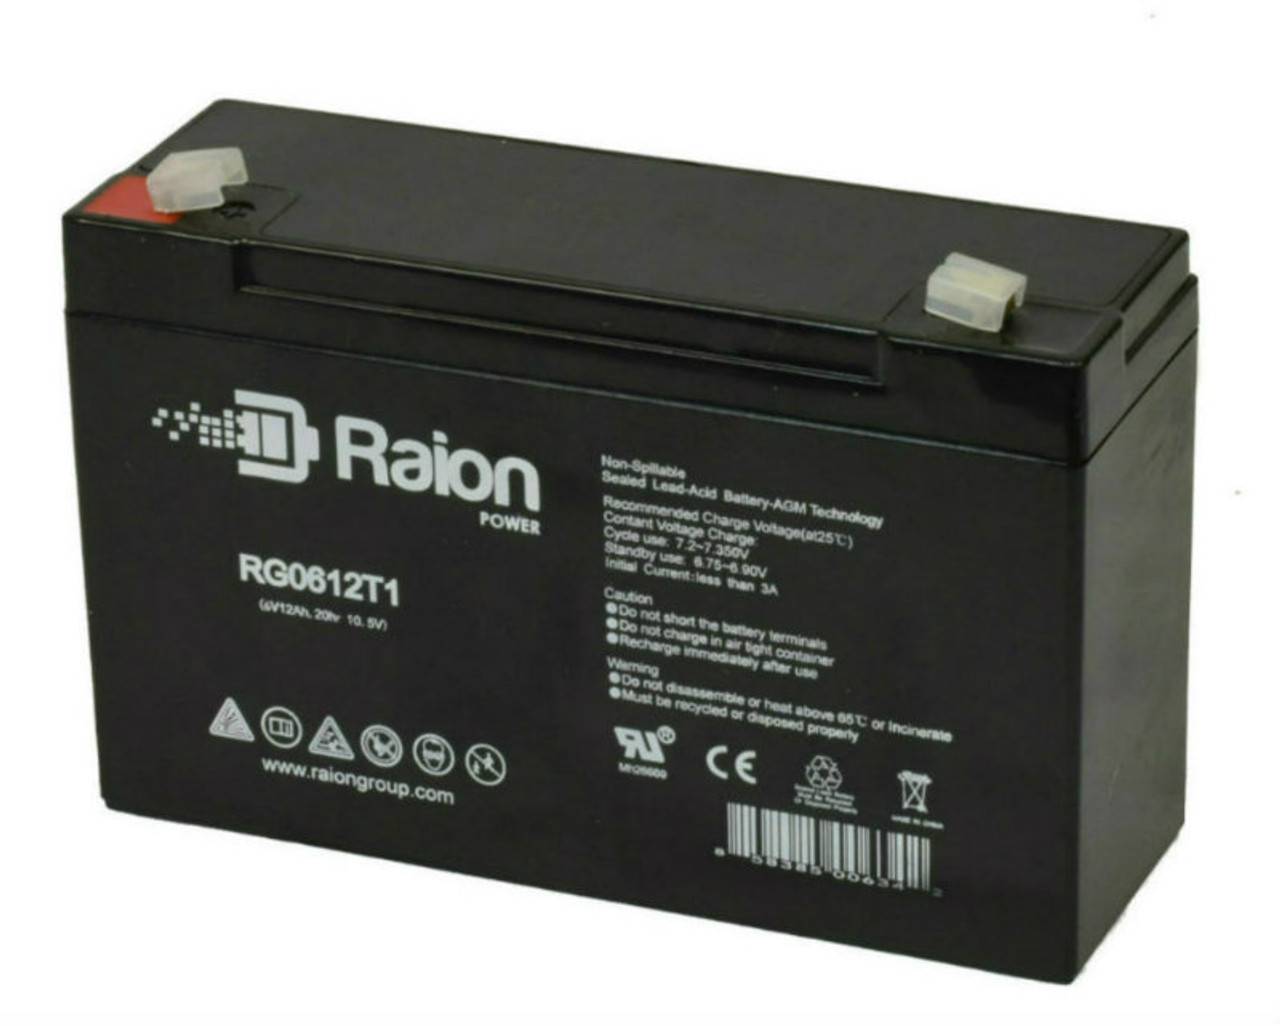 Raion Power RG06120T1 Replacement Battery Pack for Sentry Lite SCR525EX emergency light